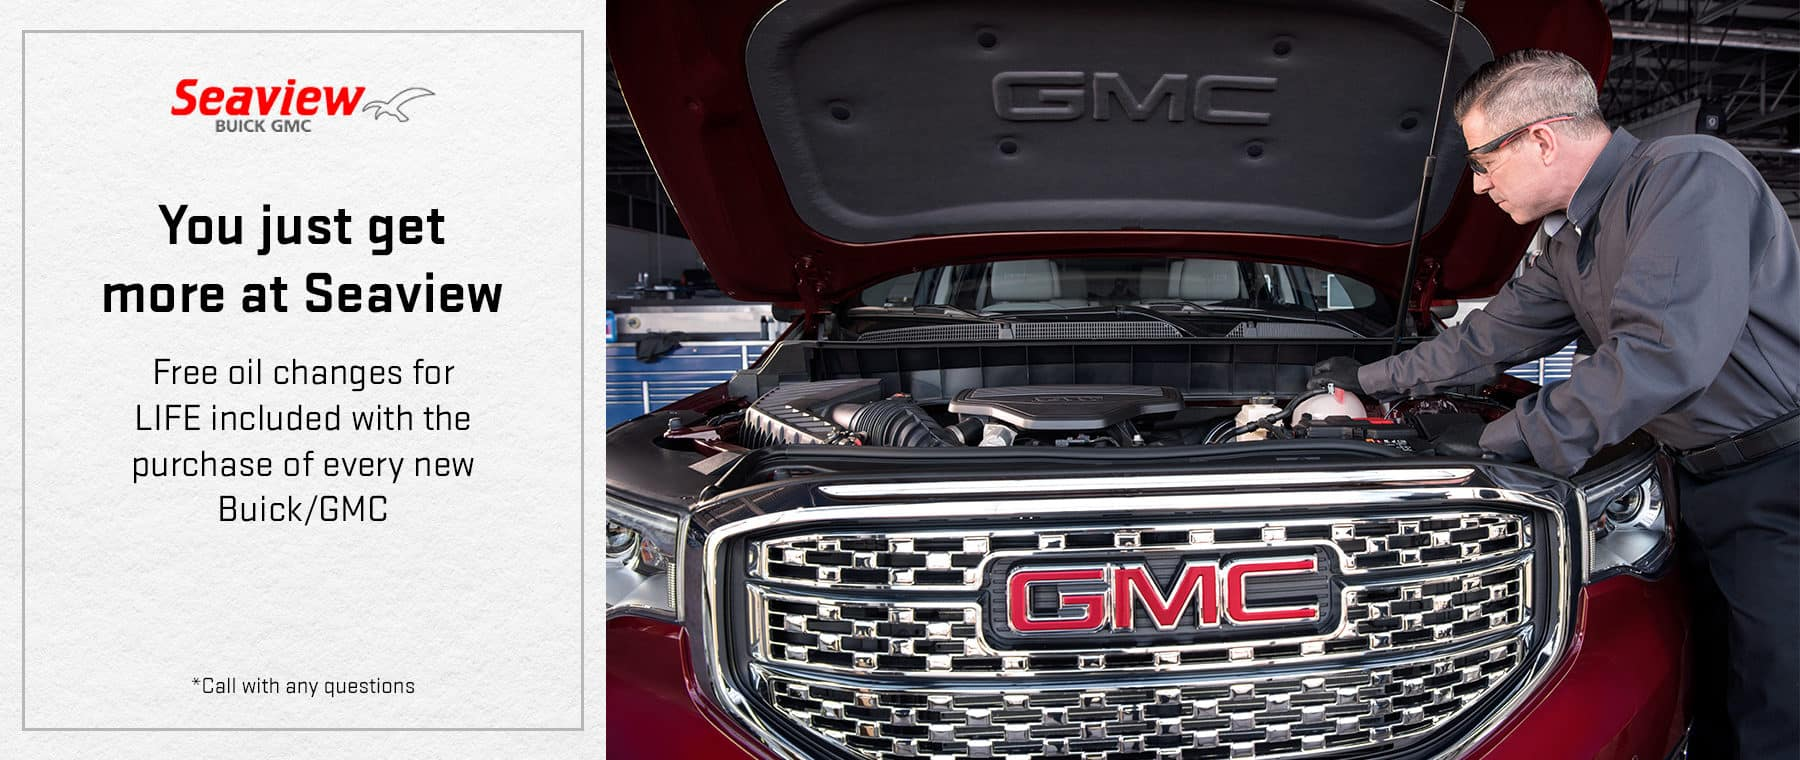 Free oil changes for LIFE included with the purchase of every new Buick/GMC